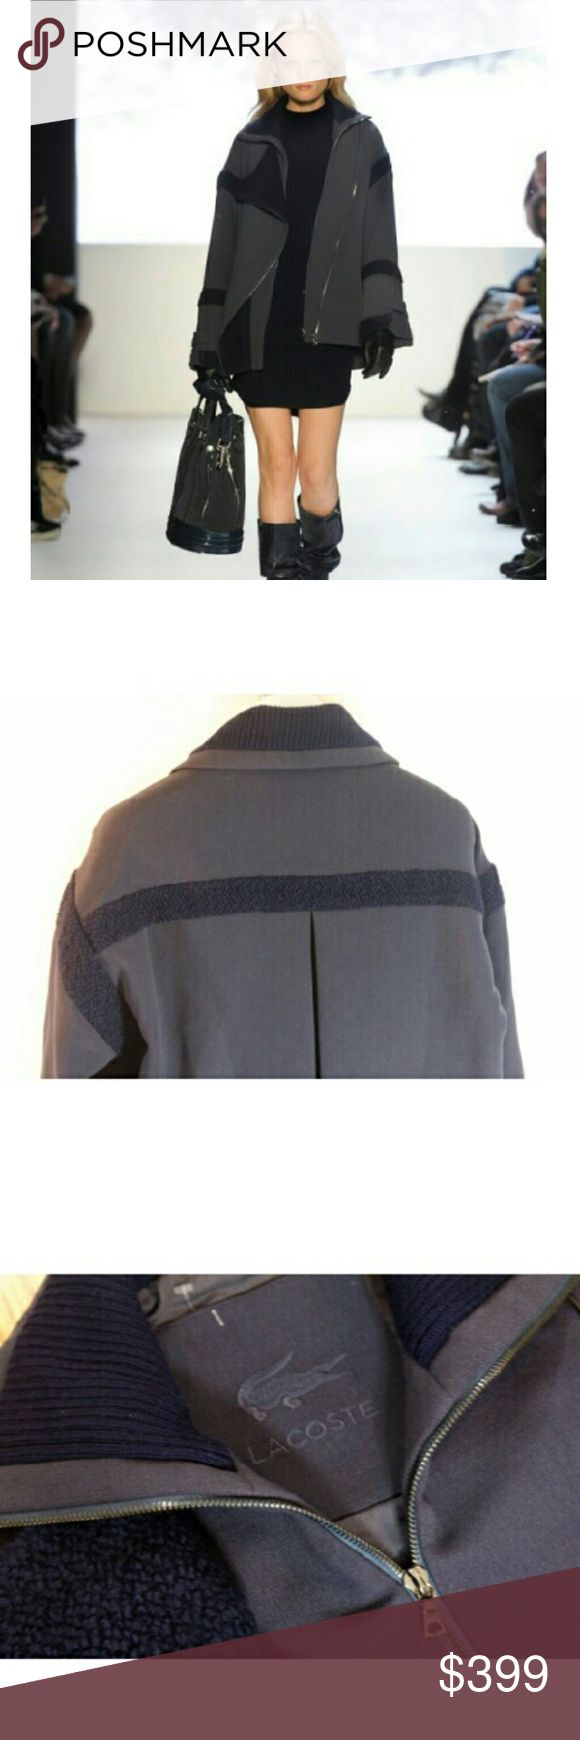 """LACOSTE Bomber Jacket - Size 8 / 40 UK Featured in their runway show. Has details similar to those found in designs by Alexander Wang,  rag & bone or ACNE. With a New York hipster feel to it, this bomber-style oversized wool blend jacket features a double zip front. Fleece wool accents around arms, cuffs, & shoulders. This is a nice, weighty warm coat. ** Similar to the Acne Velocite jacket.   Bust: 20""""  Arms: 22"""" Shoulders: 21"""" Length: 27""""  I work in L.A as a wardrobe stylist for film…"""